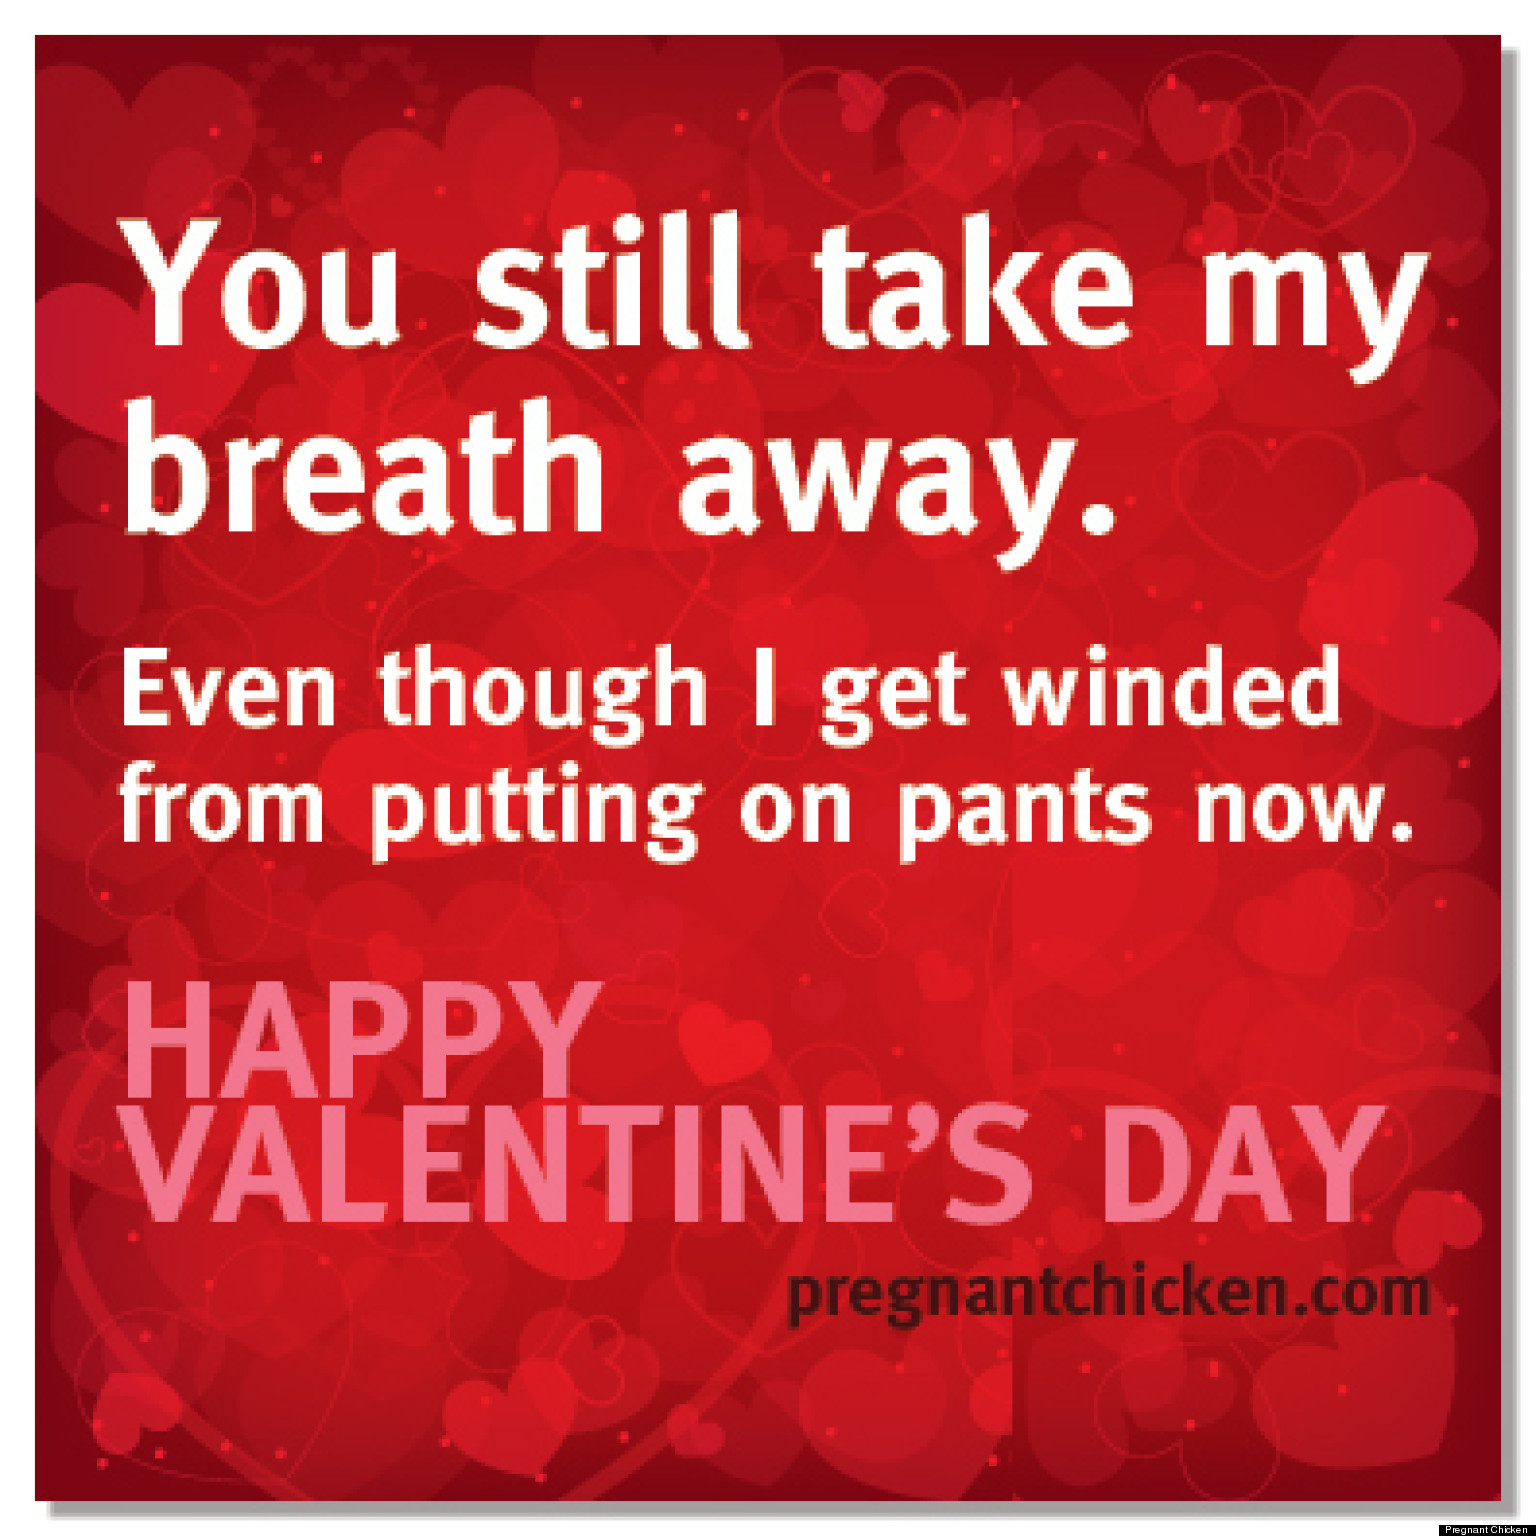 Funny Valentines For Pregnant Women To Give Their Partners PHOTOS – Funny Sayings for Valentines Cards